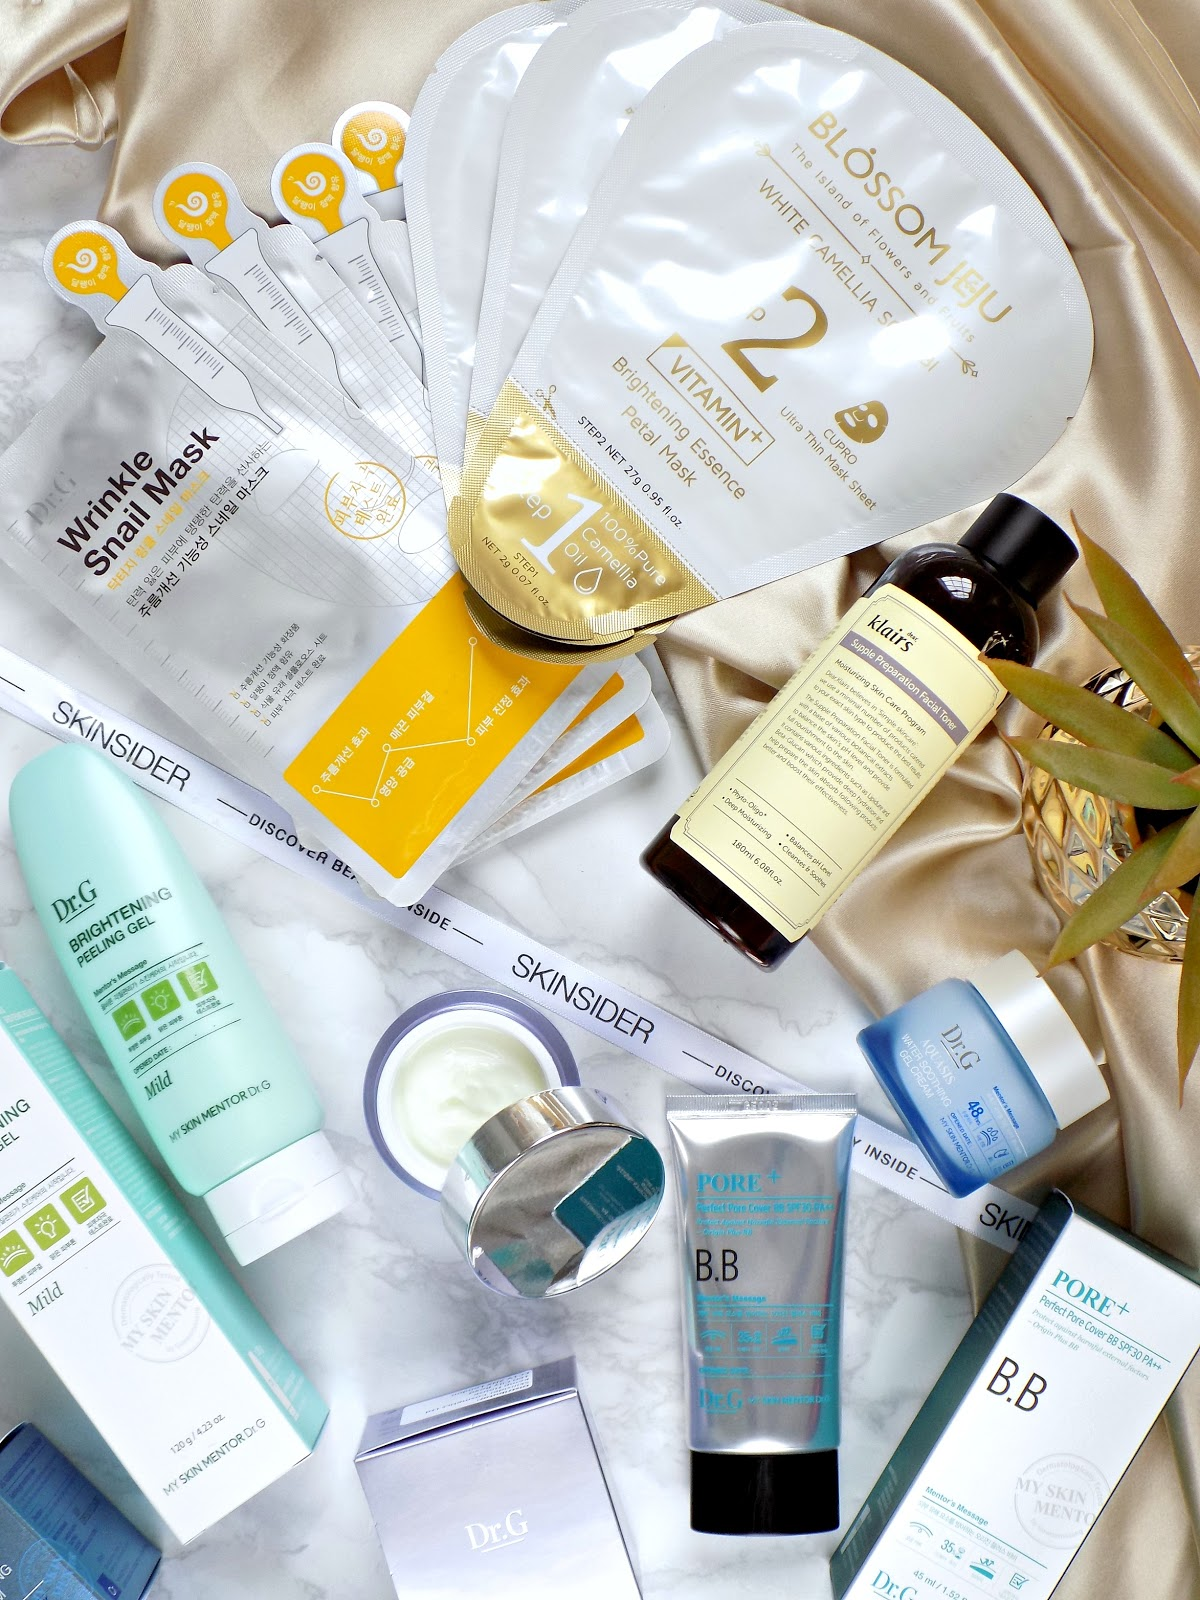 Korean beauty haul from Skinsider UK